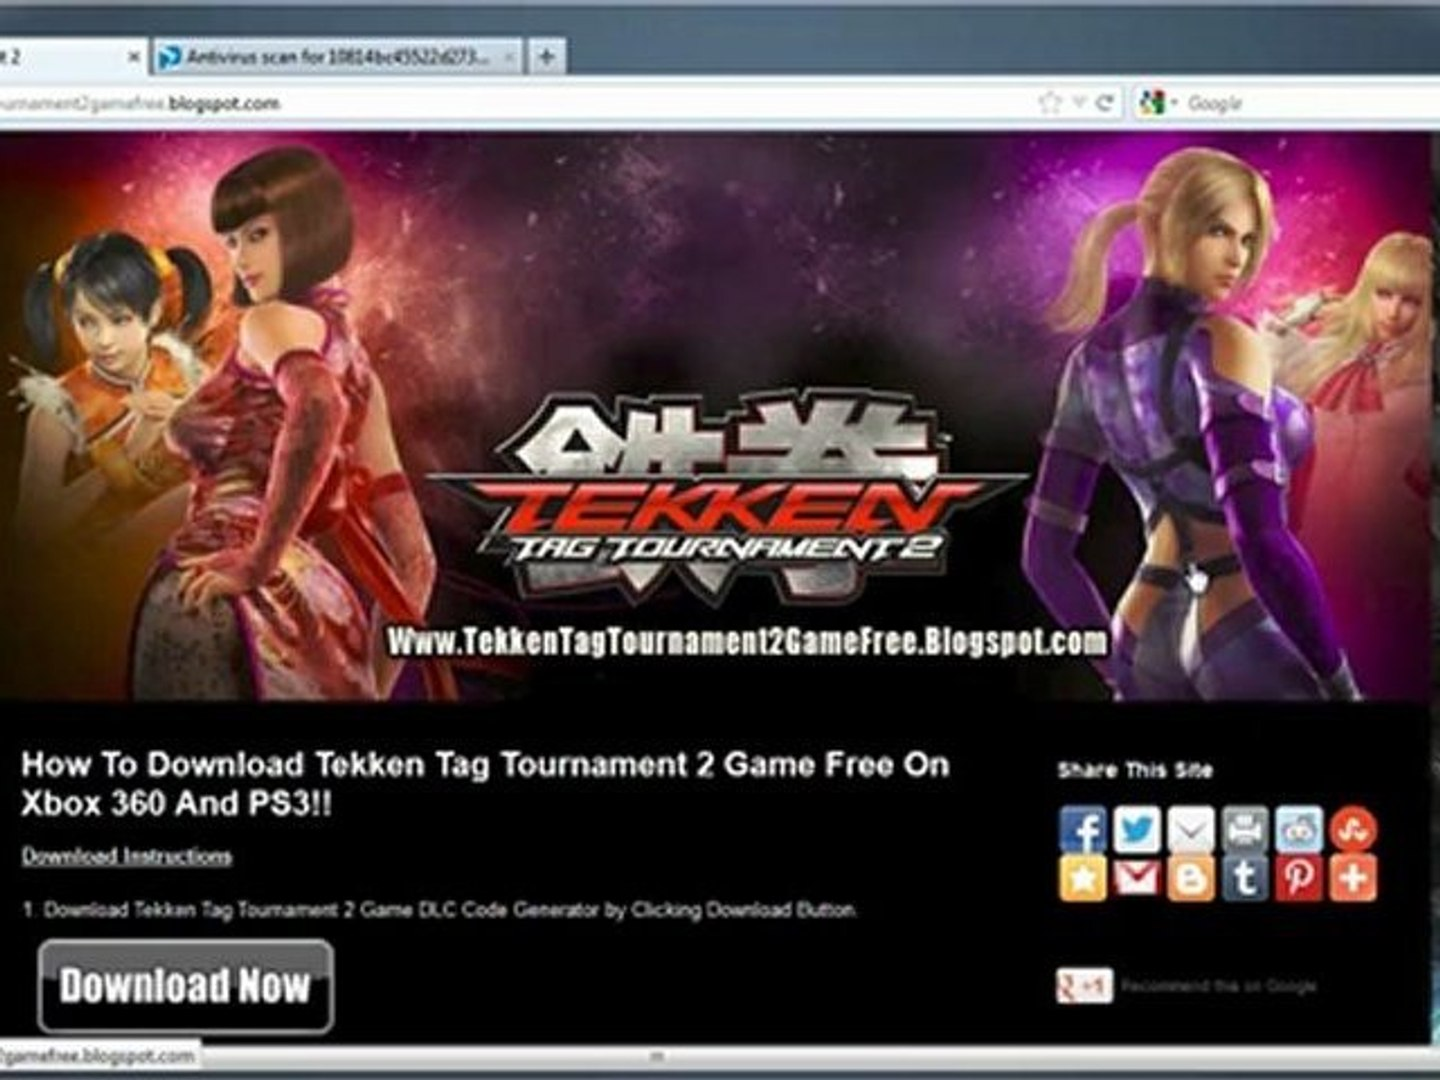 How To Install Tekken Tag Tournament 2 Game Free On Xbox 360 And